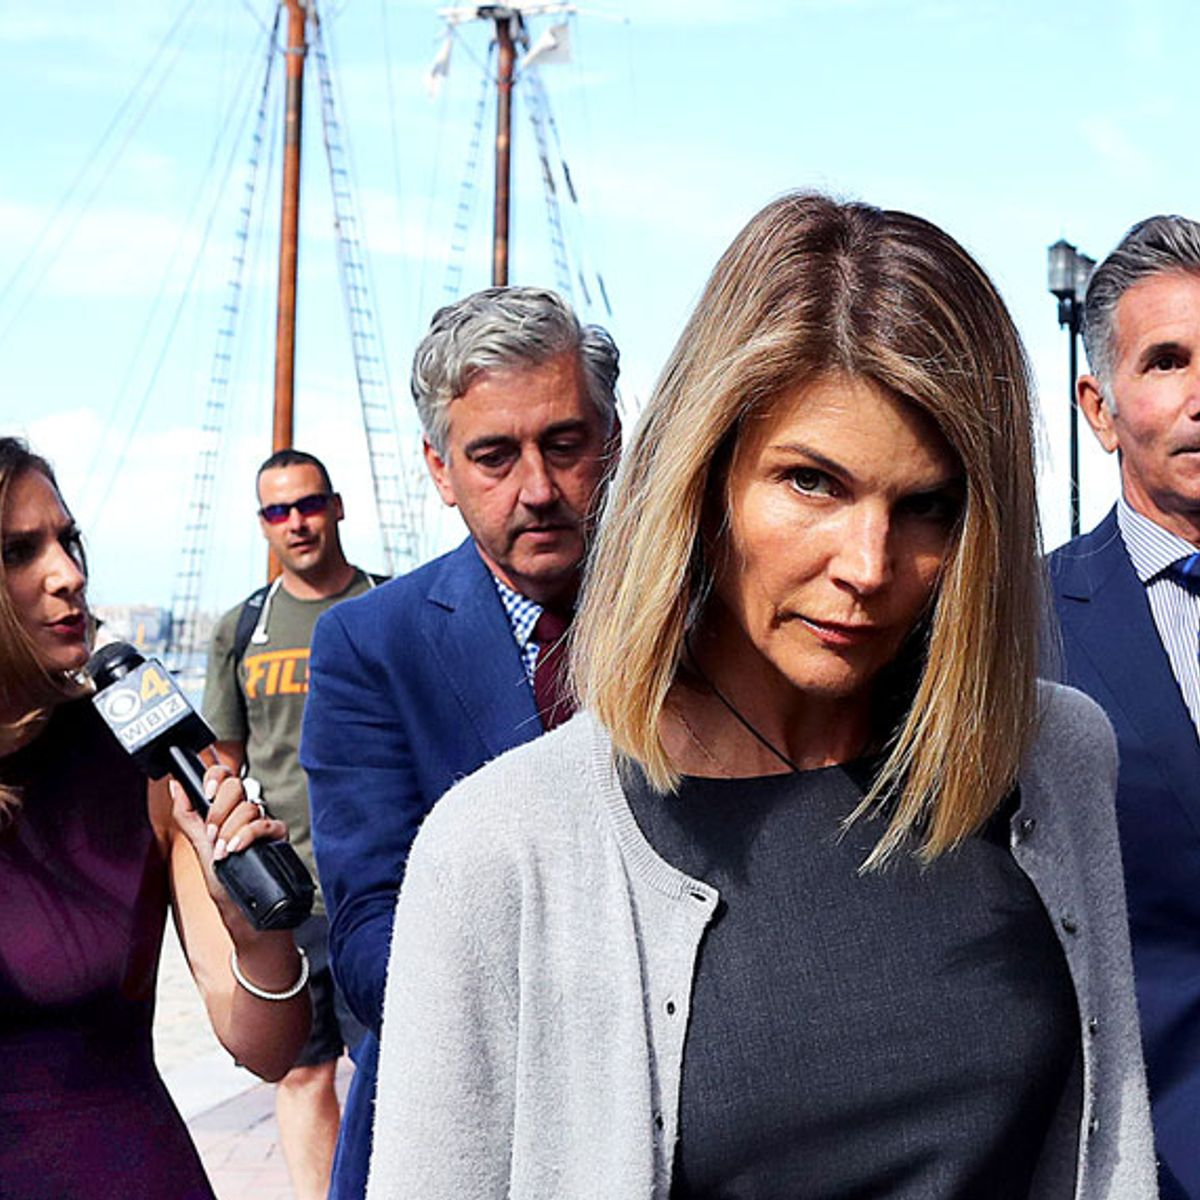 Lori Loughlin accused of withholding evidence in college admissions scam case